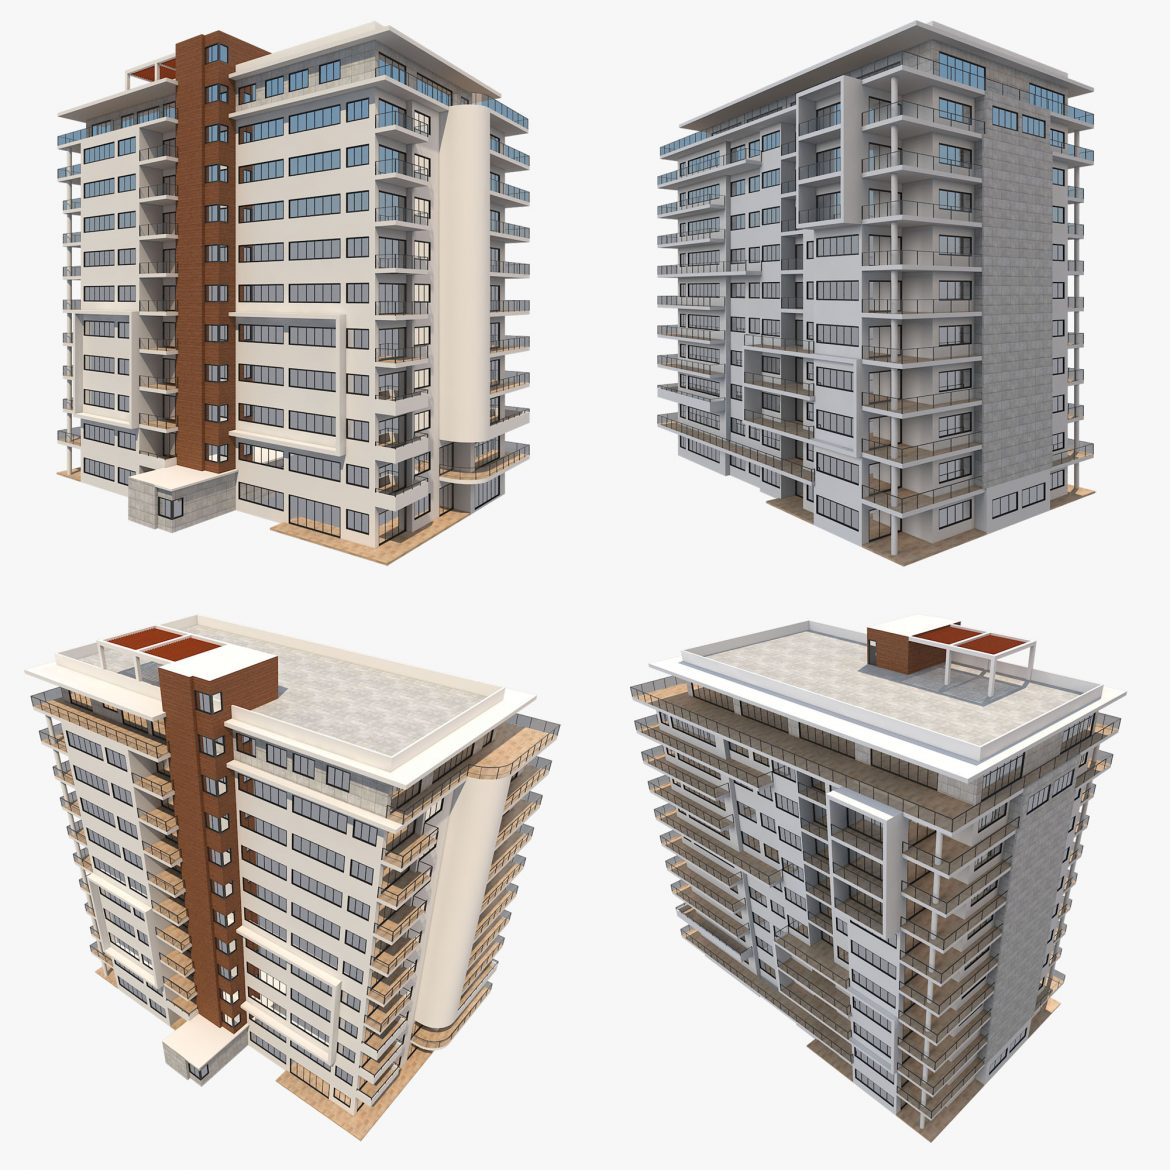 apartment building_61 3d model 3ds blend c4d fbx max ds max plugin ma mb obj 303413